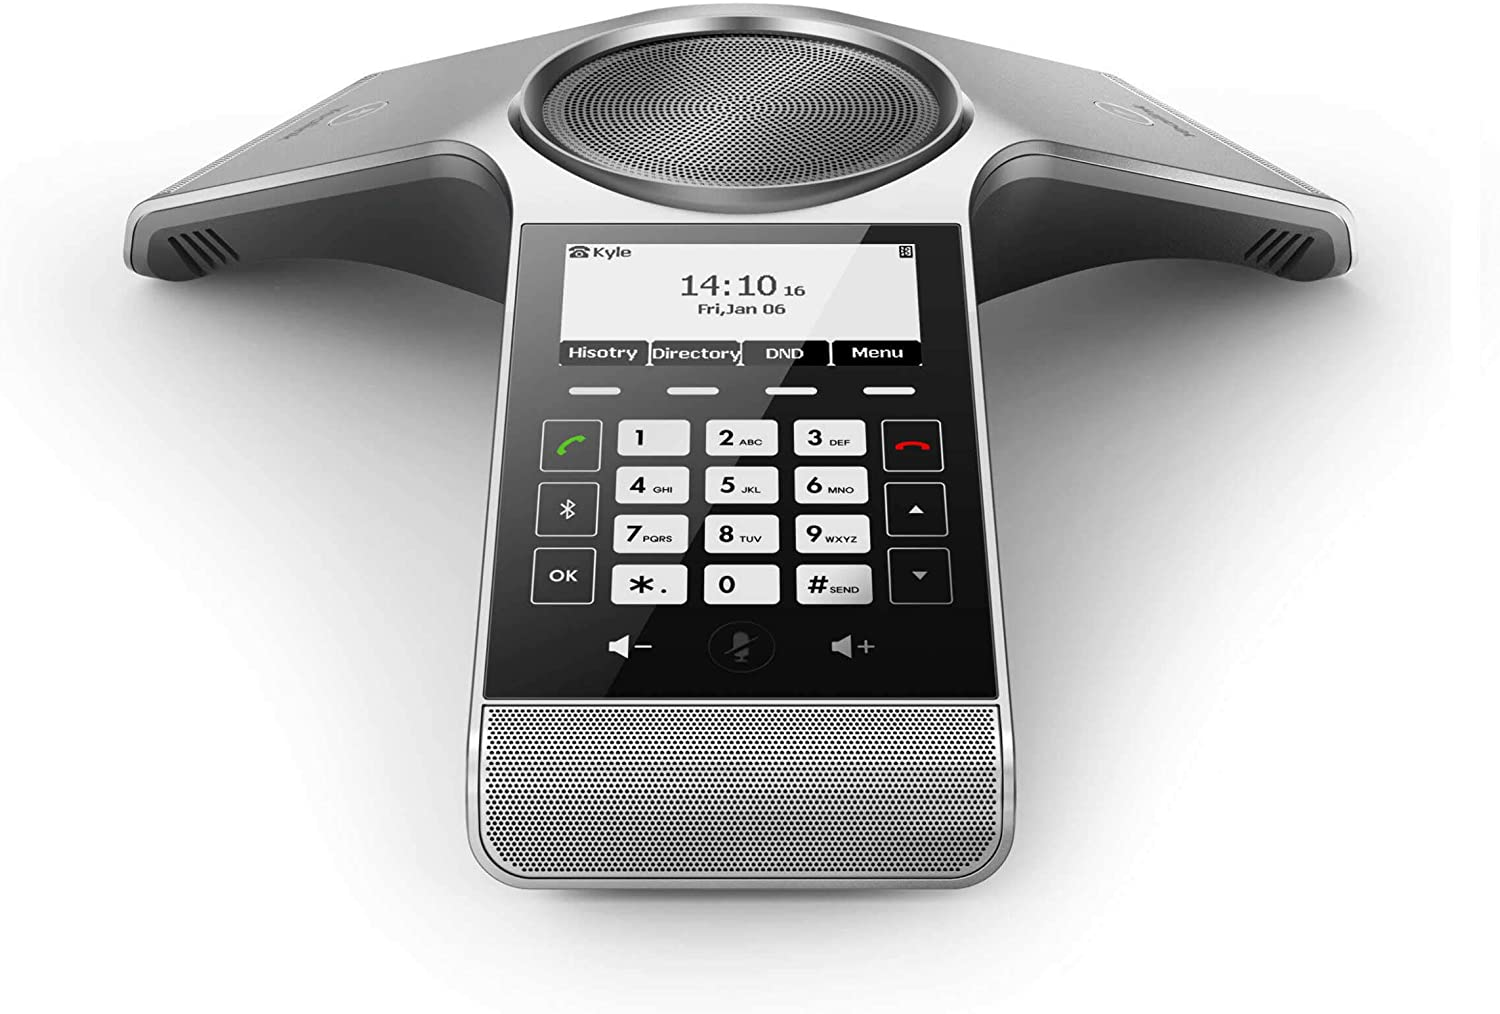 Yealink CP920 Conference IP Phone, 3.1-Inch Graphical Display. 802.11n Wi-Fi, 802.3af PoE, Power Adapter Included